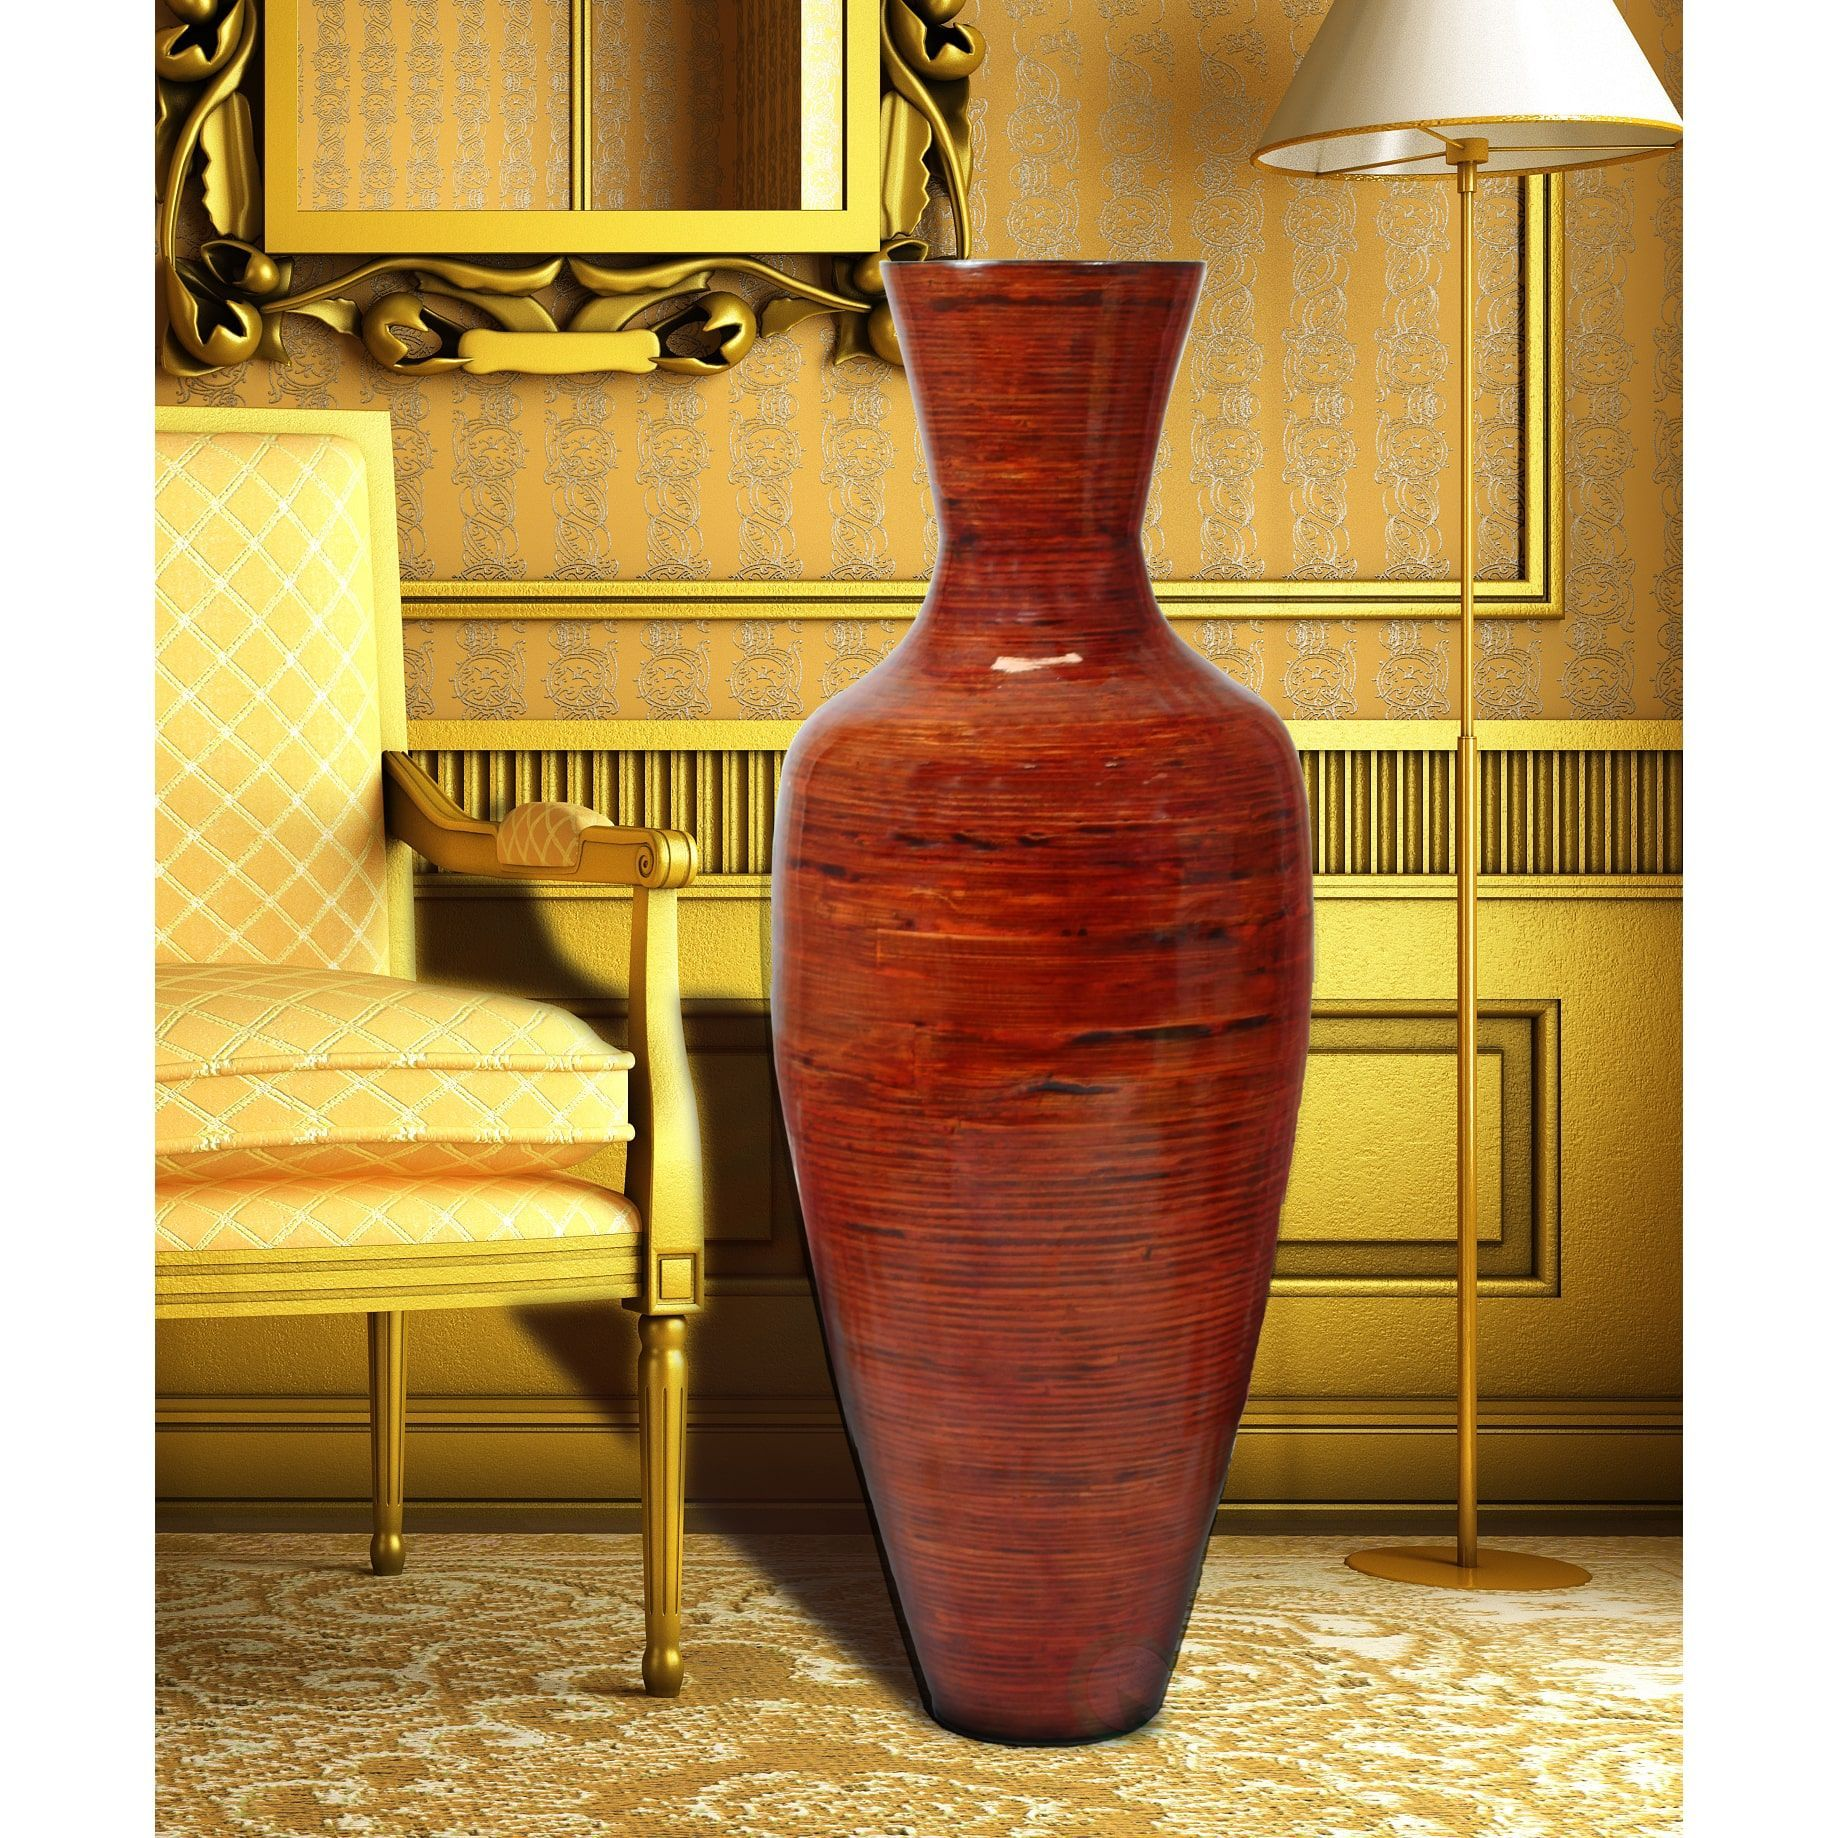 Basicwise 37 5 Tall Bamboo Floor Vase Glossy Red Glossy Red